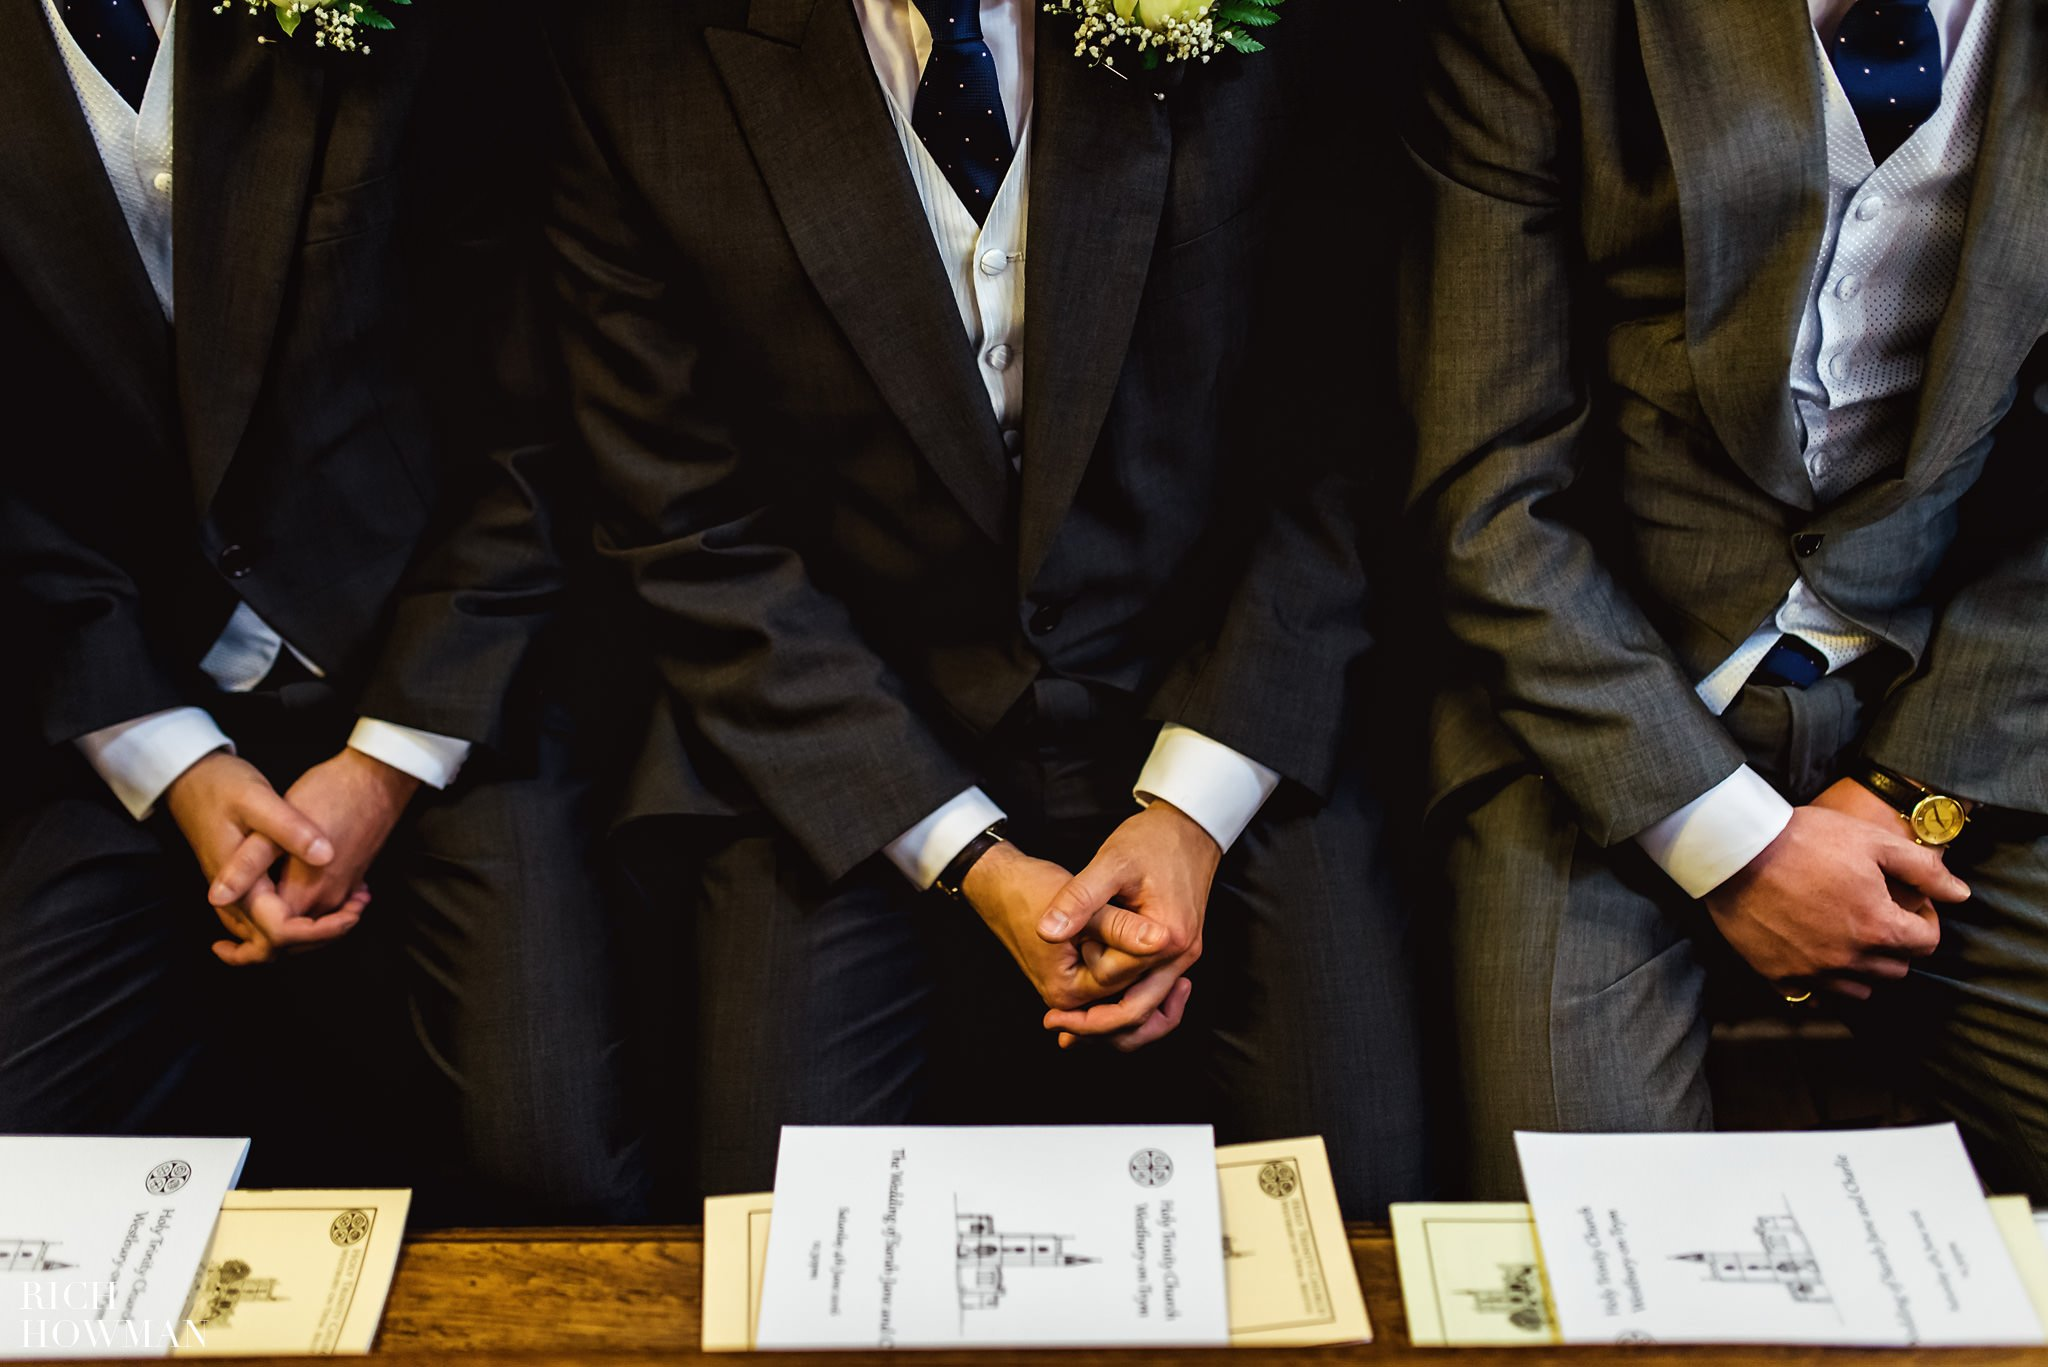 groomsmens hands clasped whilst waiting in the church